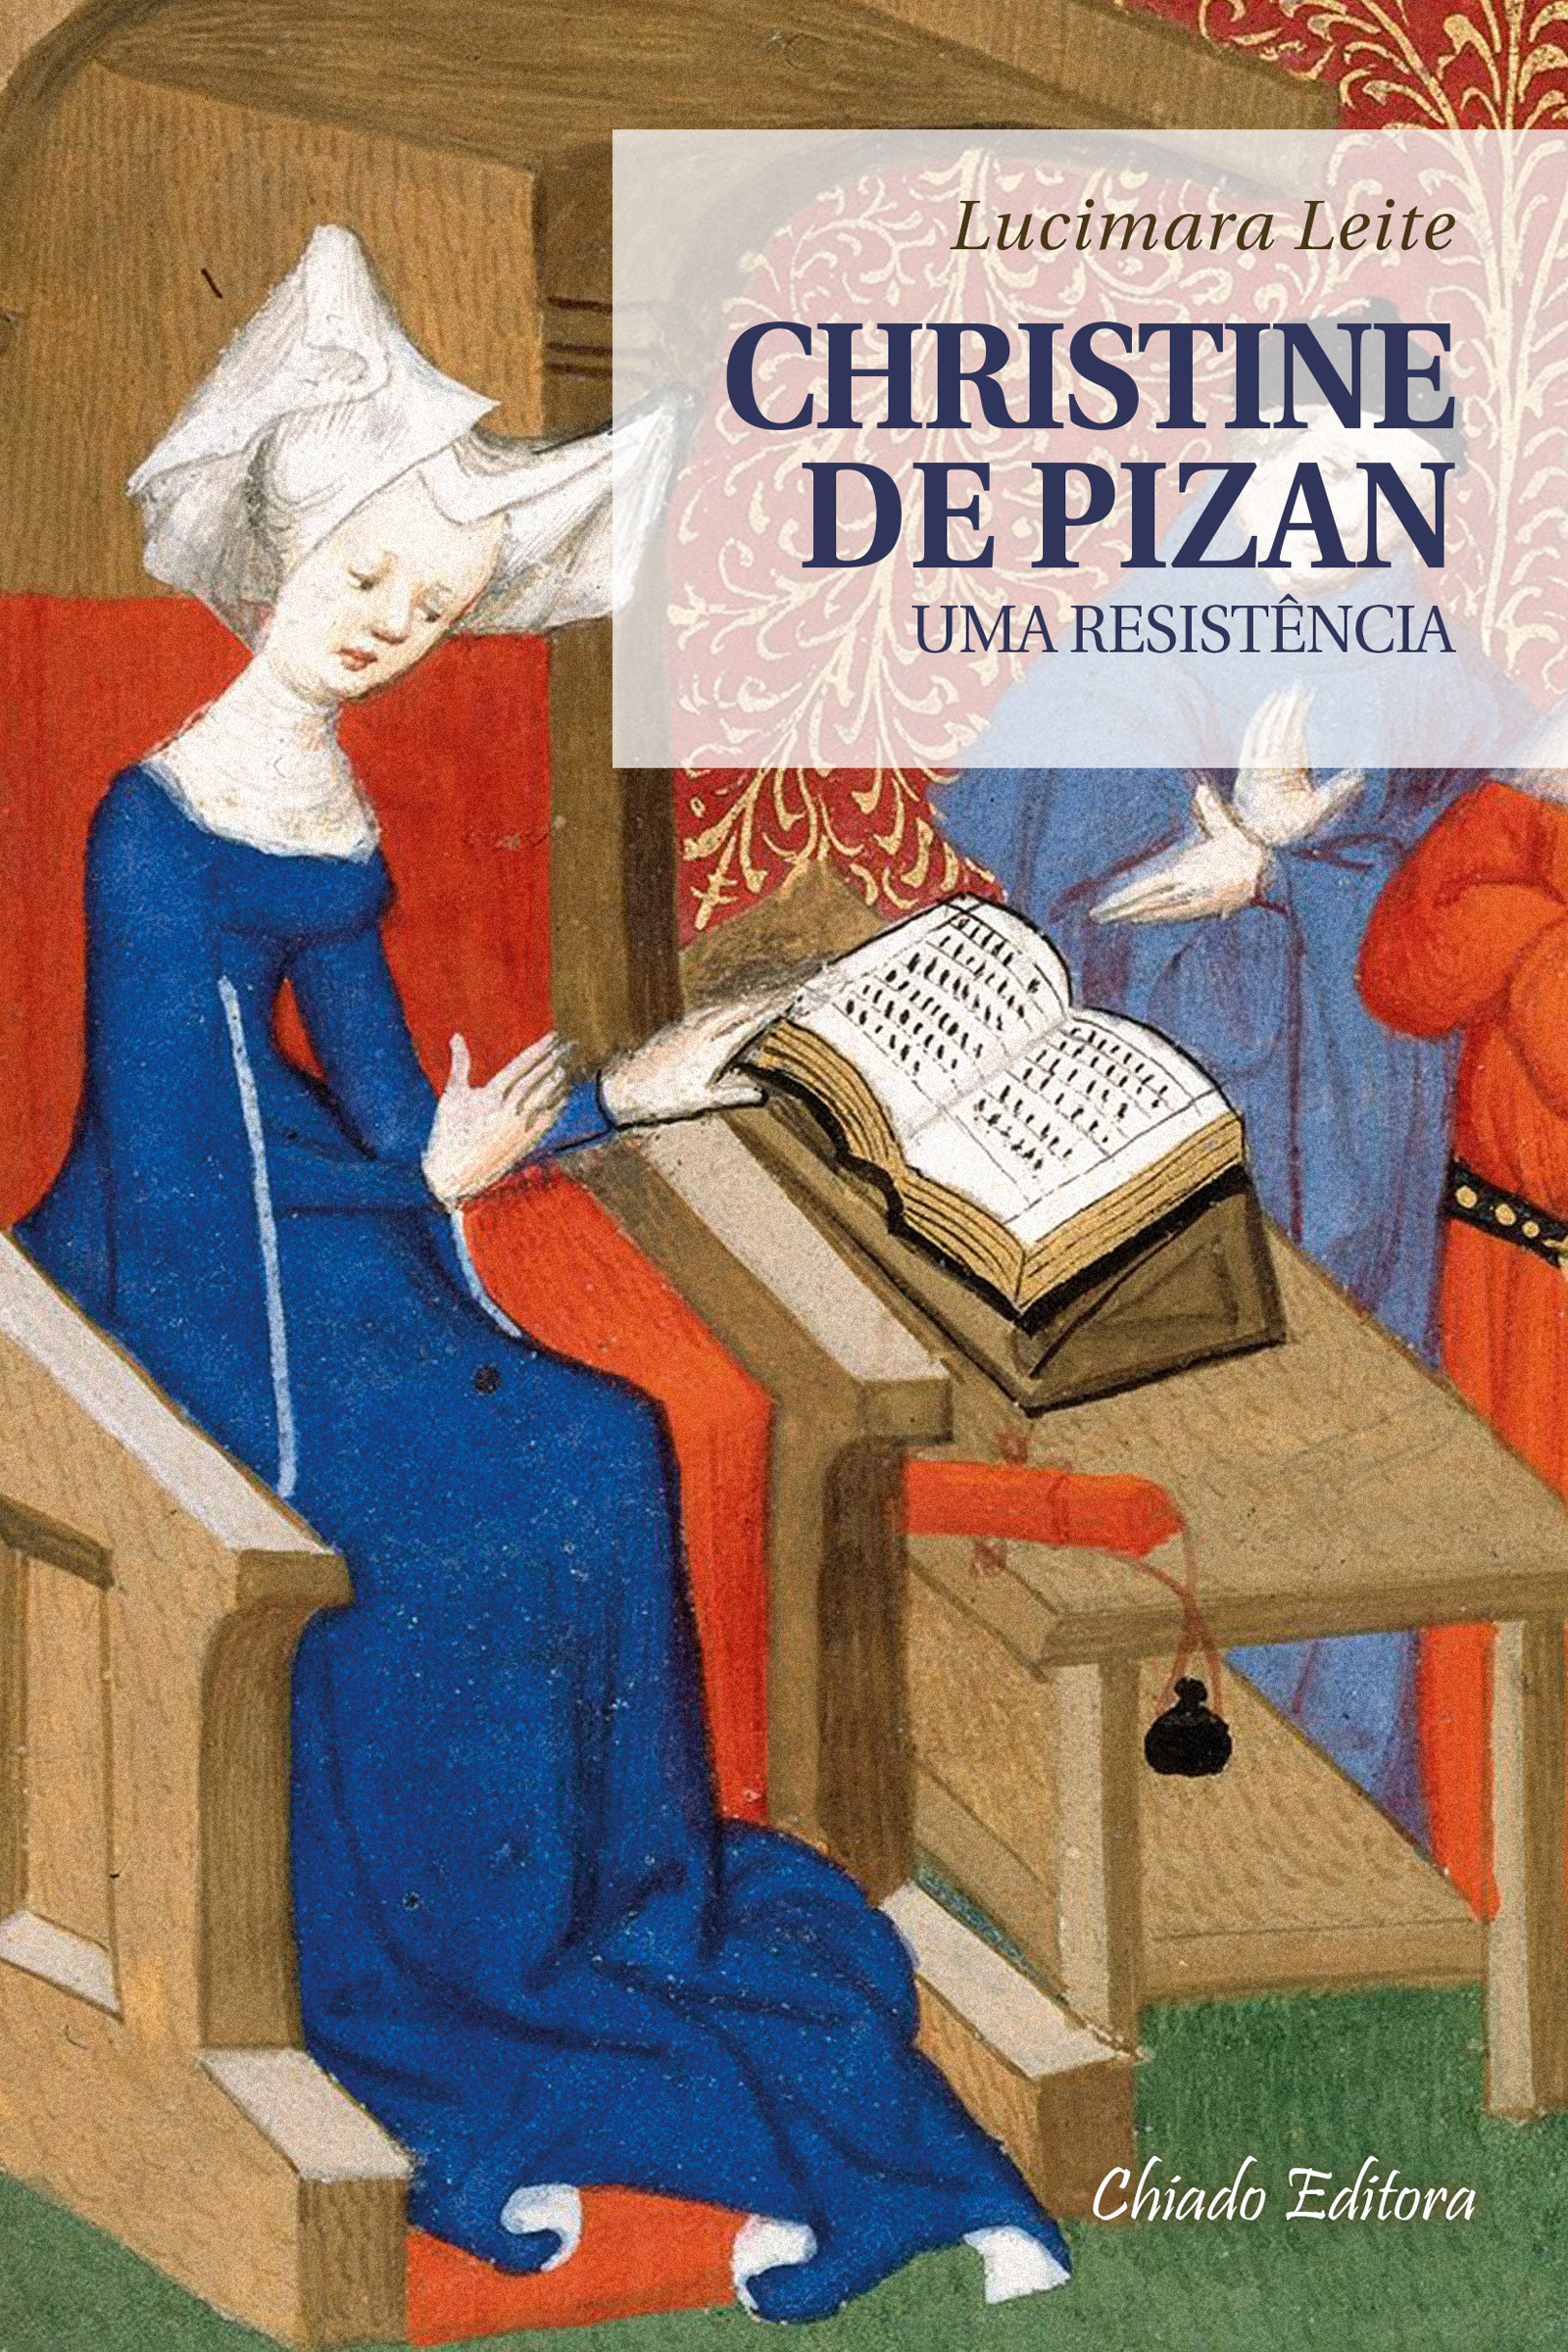 an analysis of the representation of women in the book of genesis and christine de pizans the mutati And inventing norman cantor kellner used science and technology studies as a part of his analysis 24 international standard book christine de pizans.